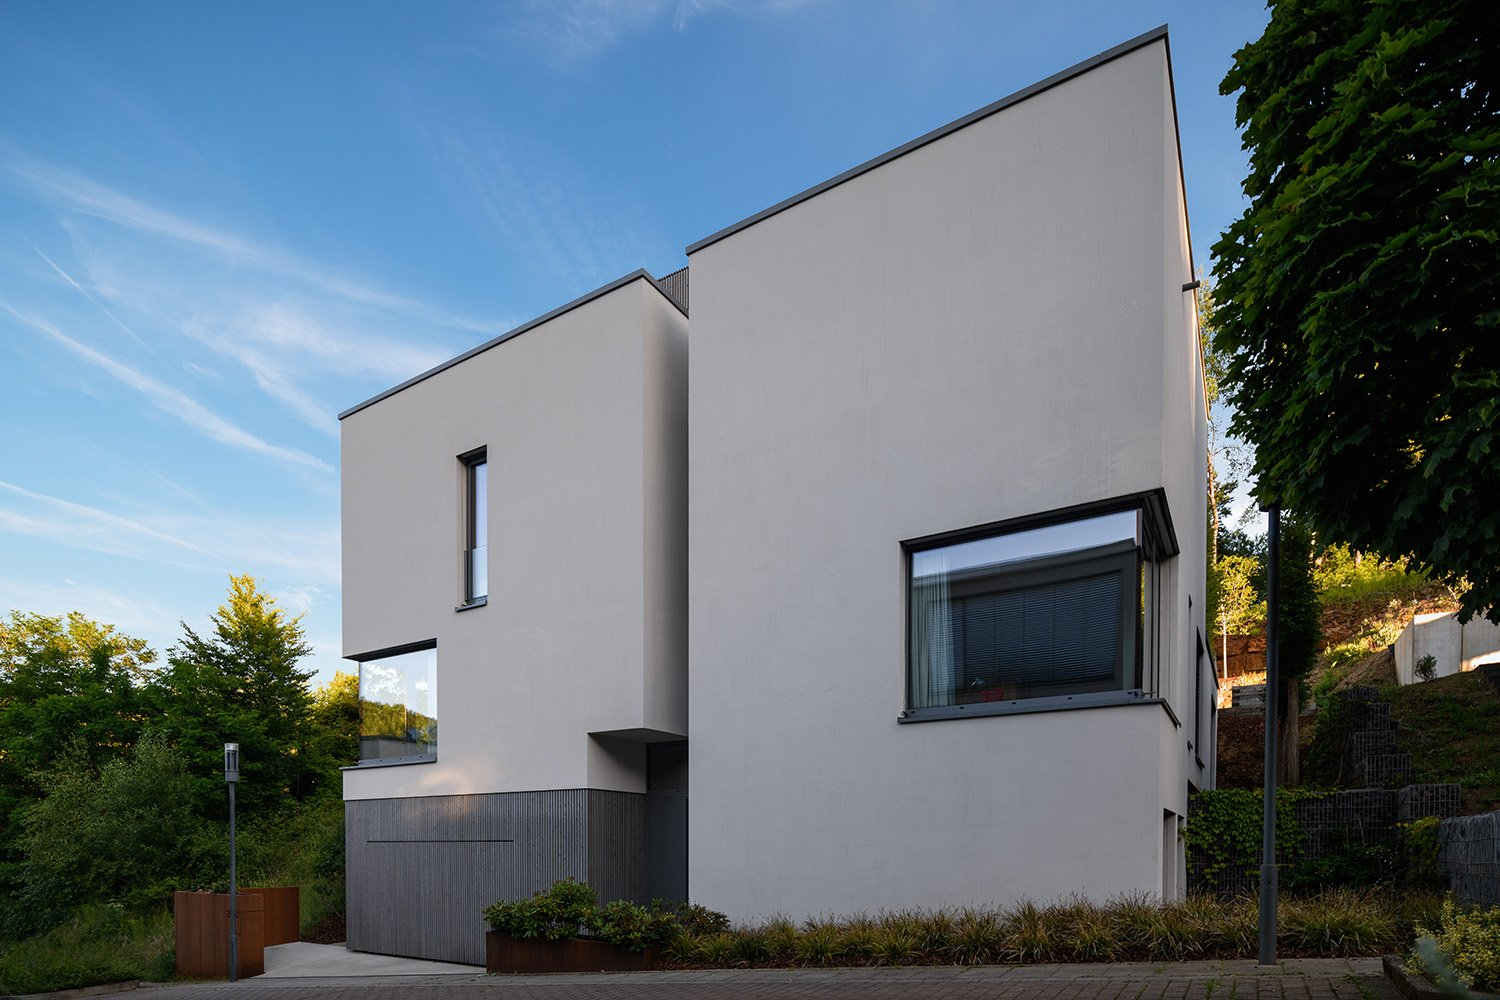 View of the North side from the street daylight Julien Swol for Beng Architectes Associés